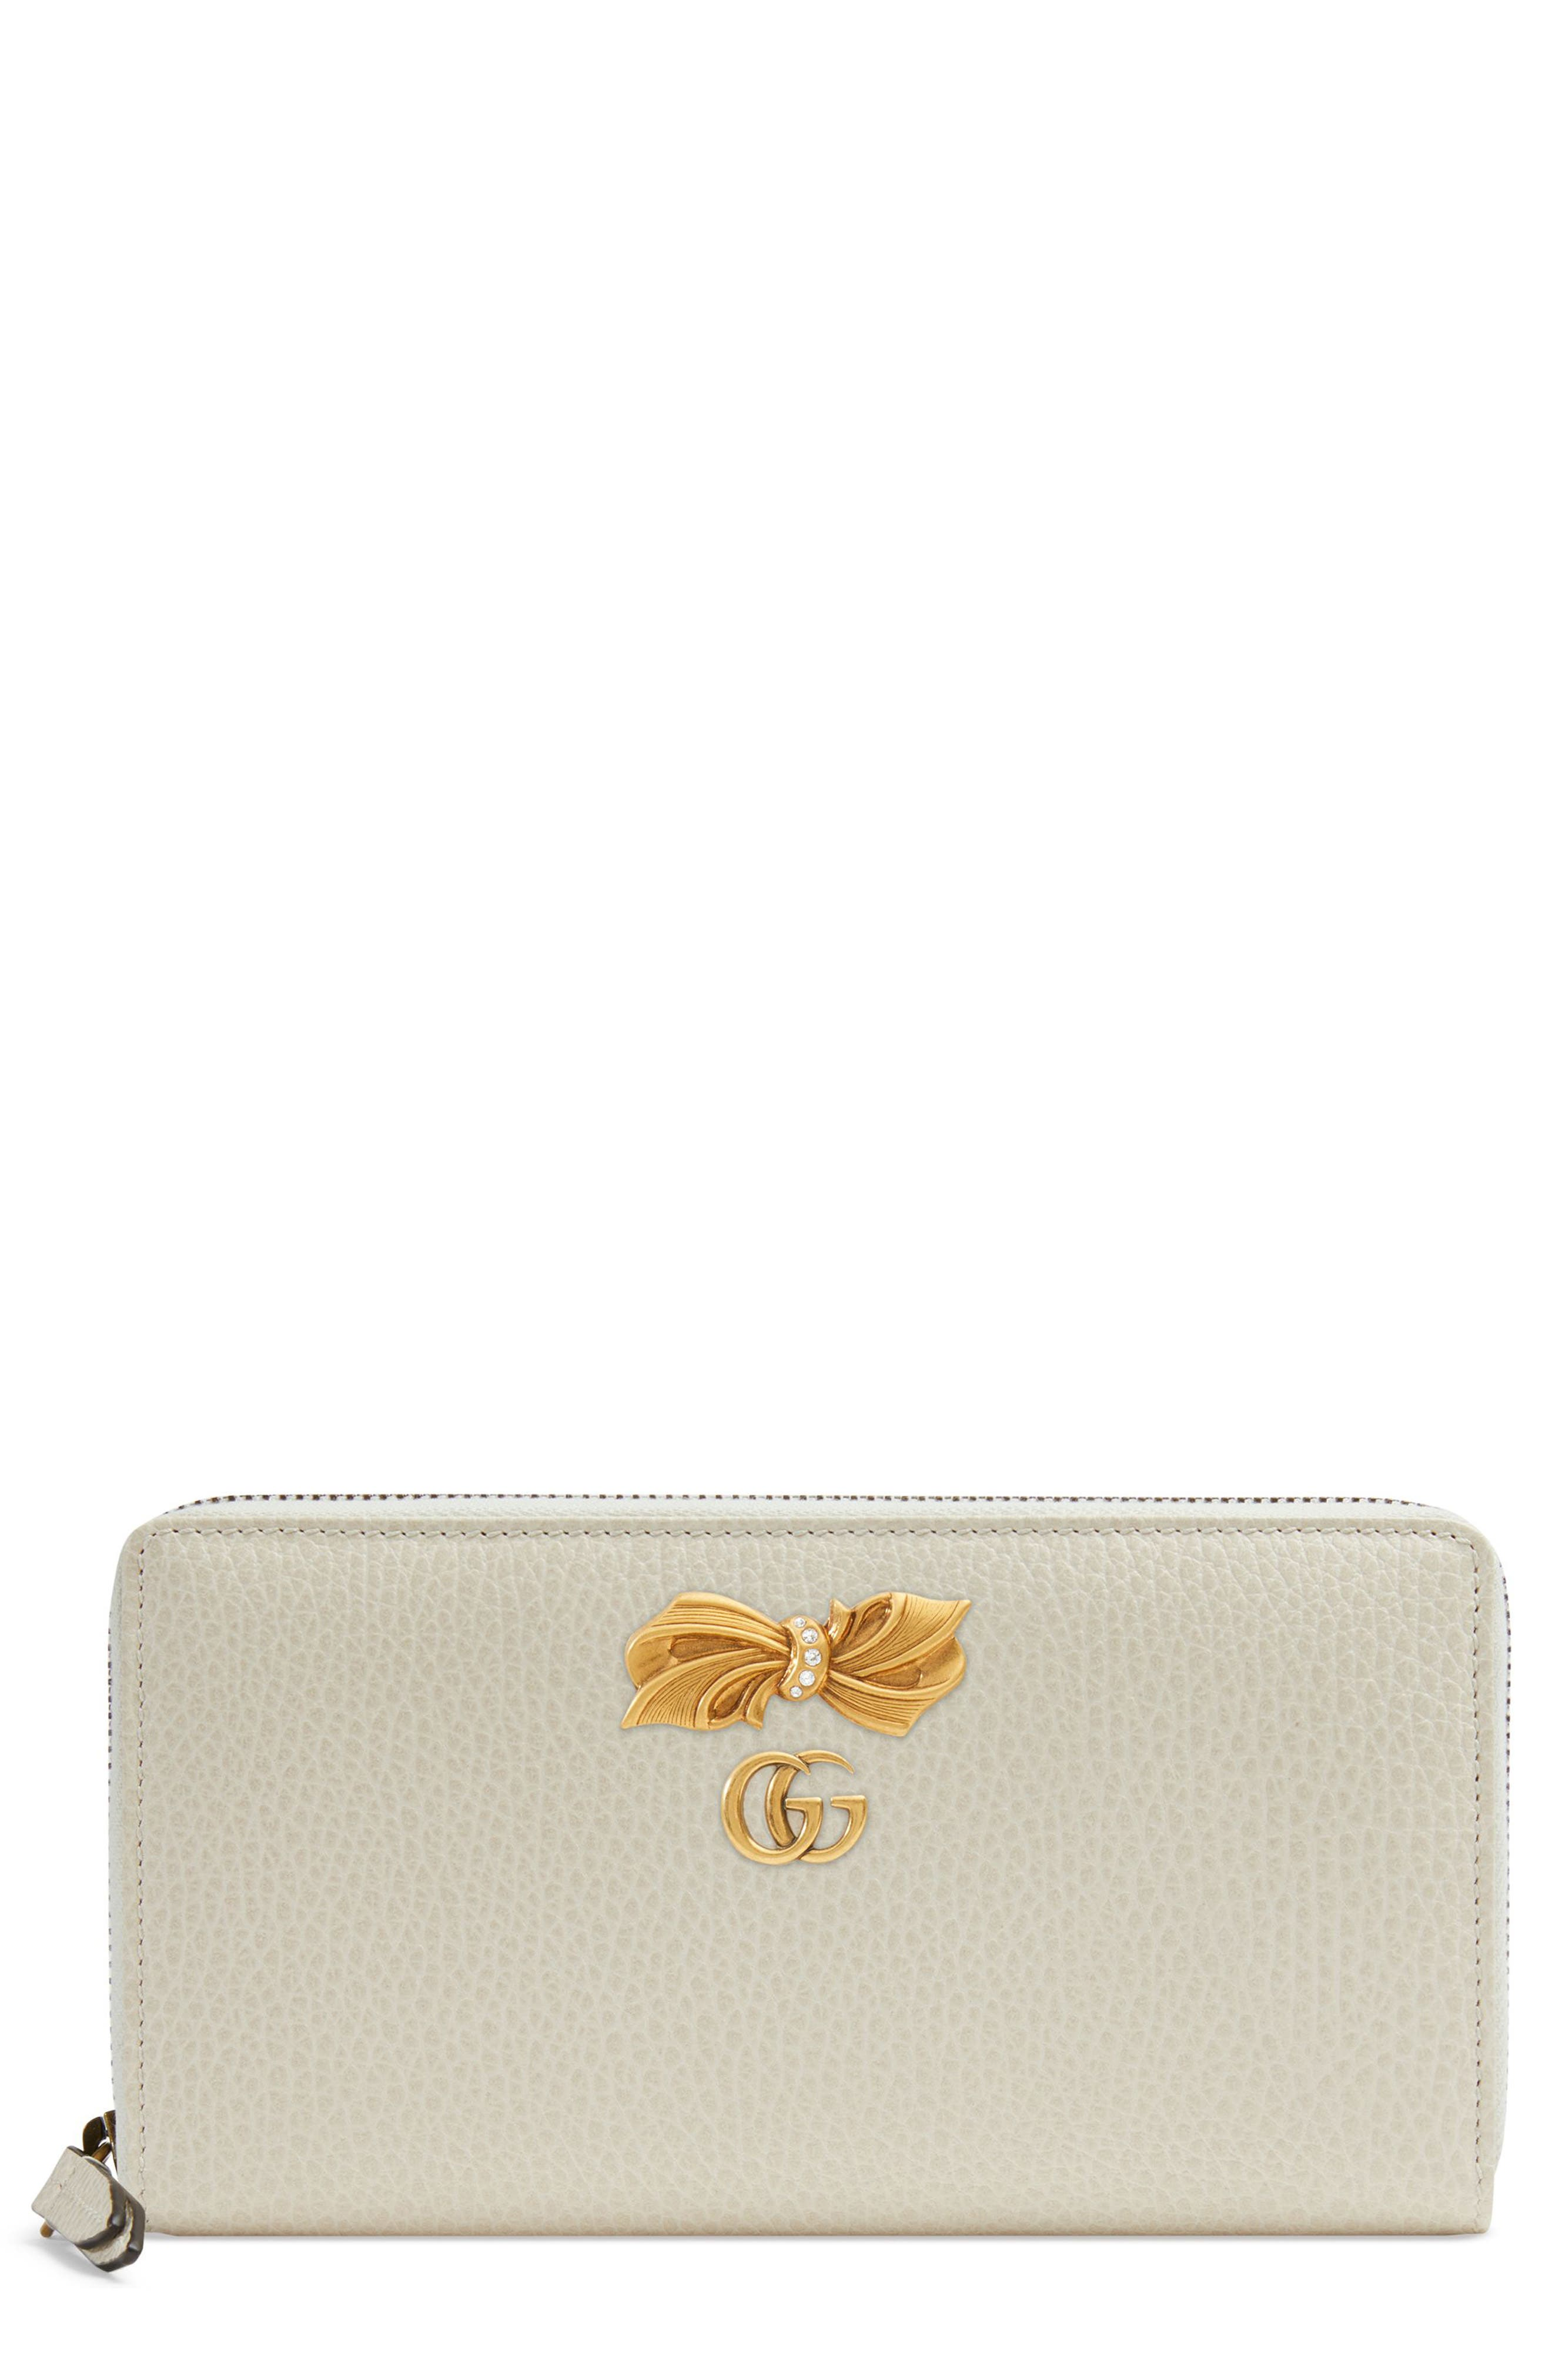 Linea Fioccino Leather Continental Wallet,                             Main thumbnail 1, color,                             MYSTIC WHITE/ PINK/ CRYSTAL